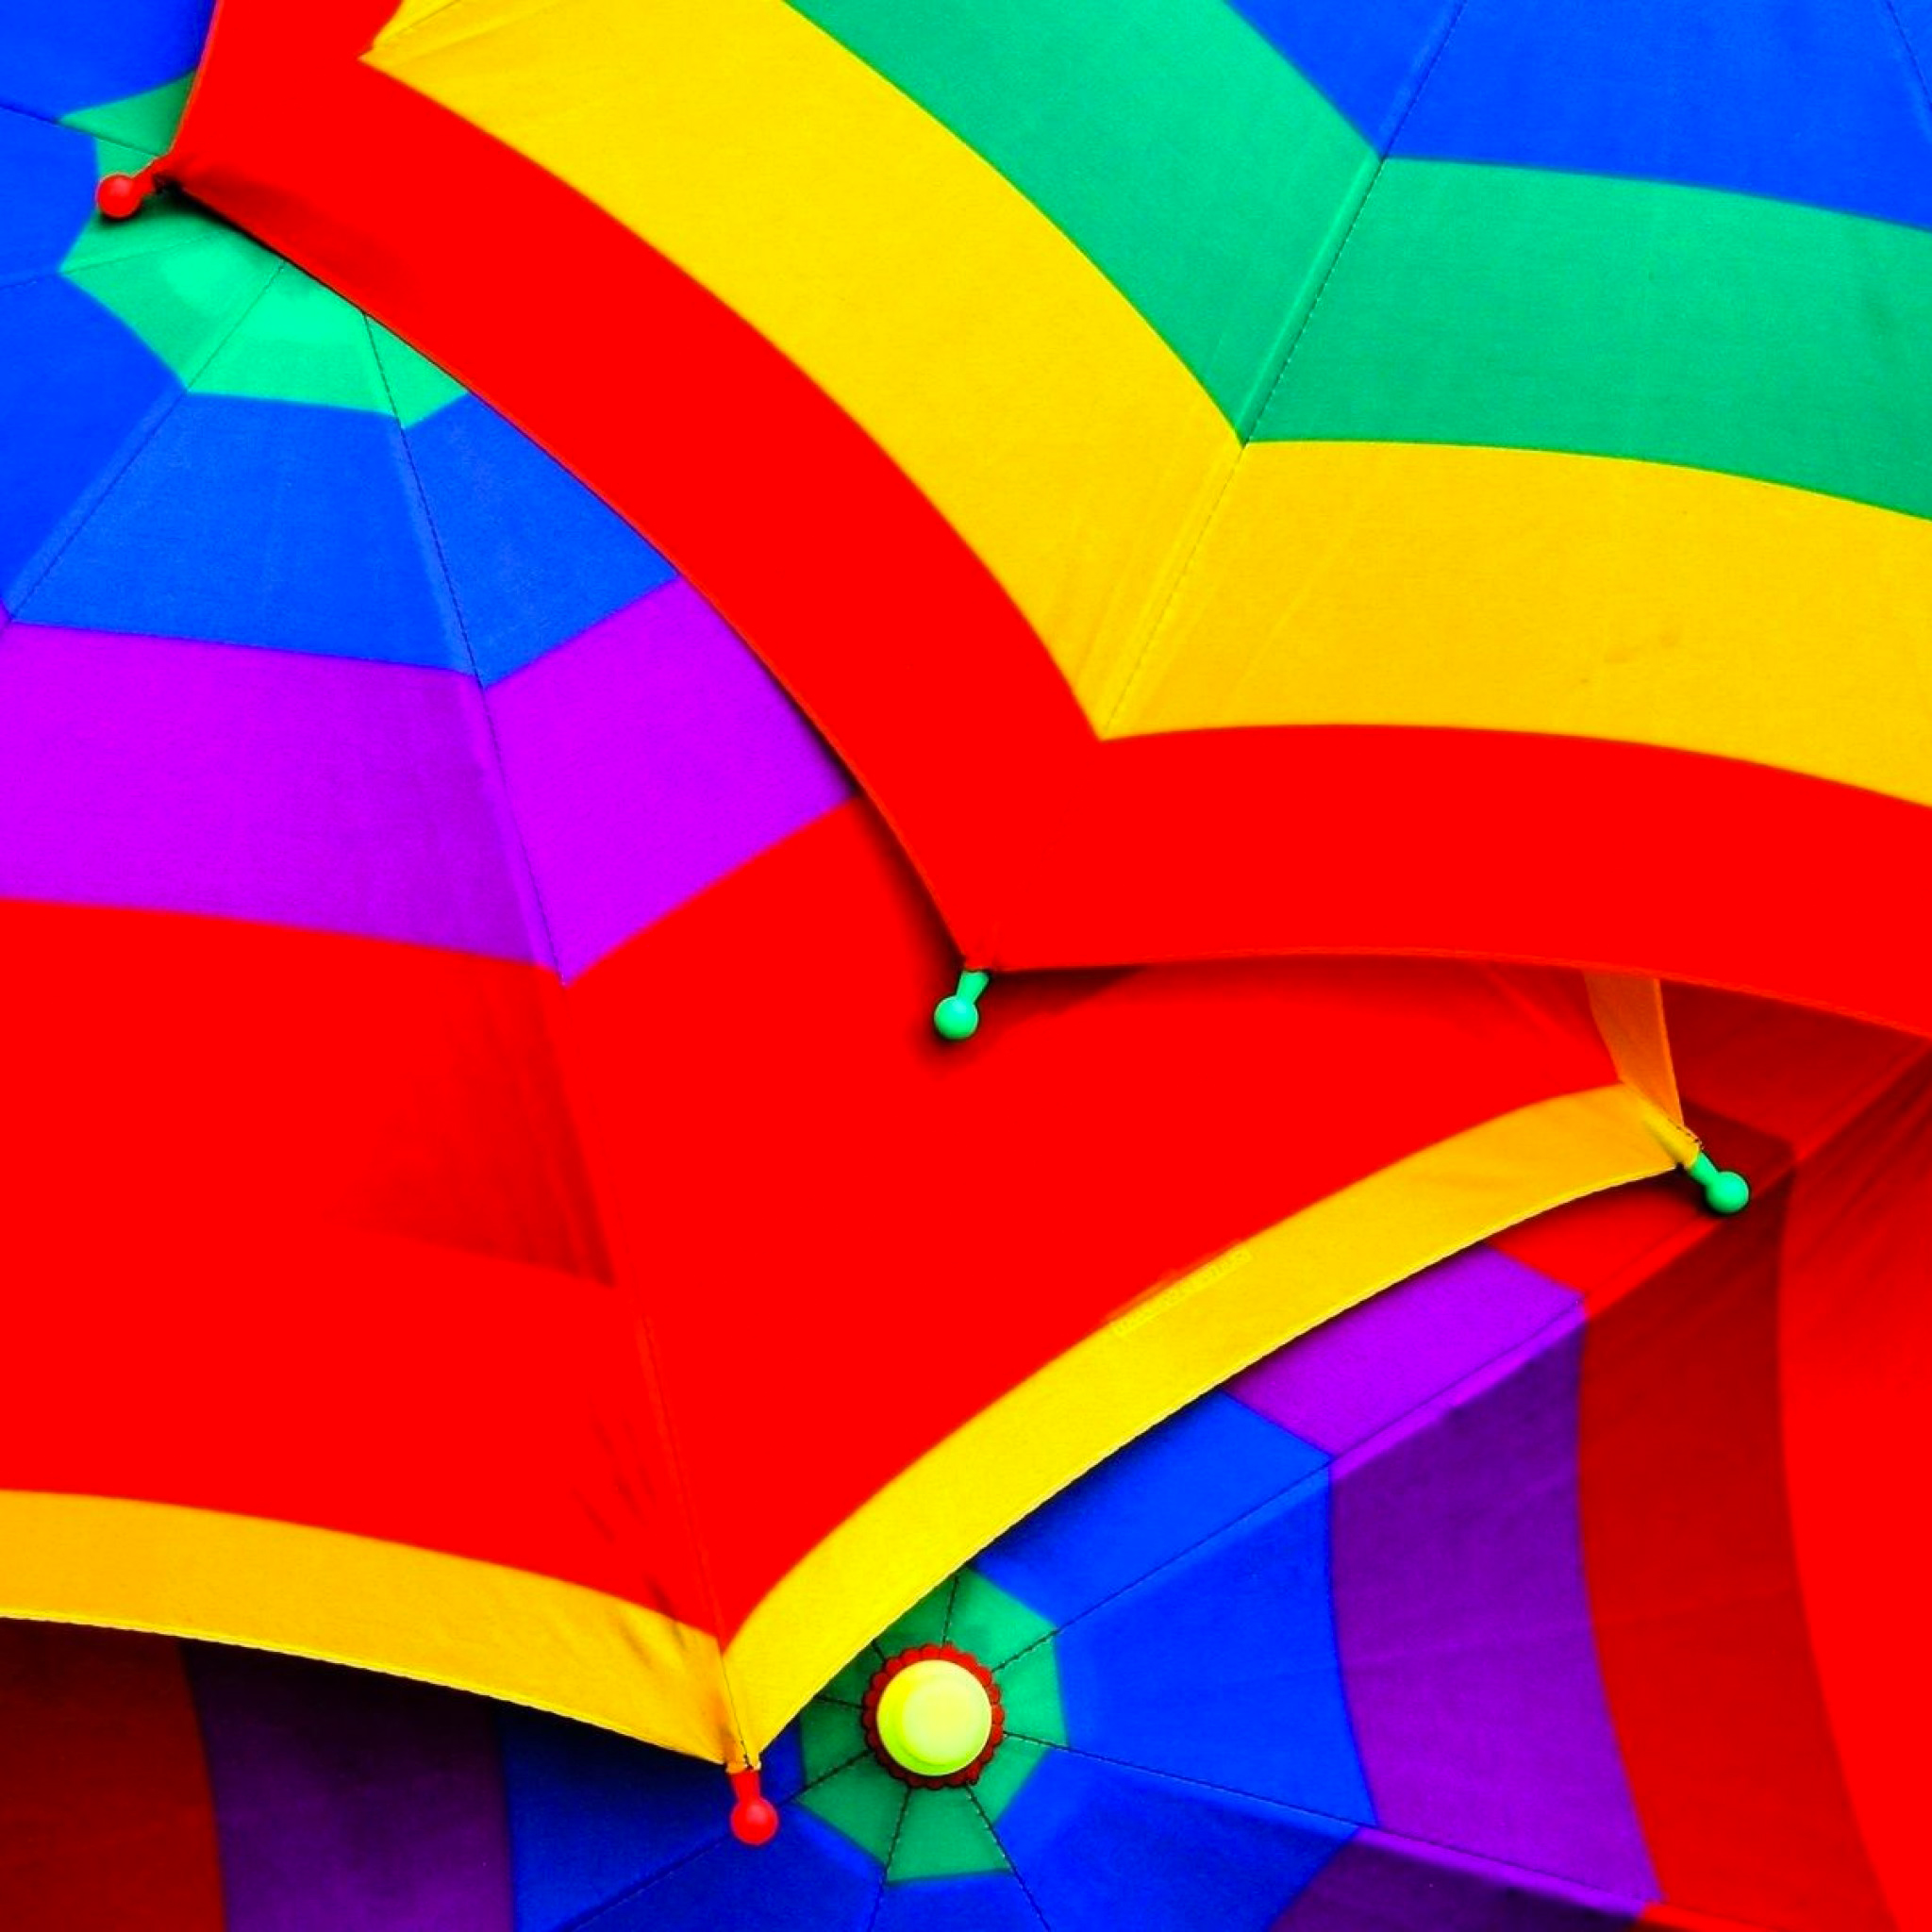 Colorful Umbrellas 3Wallpapers iPad Colorful Umbrellas   iPad